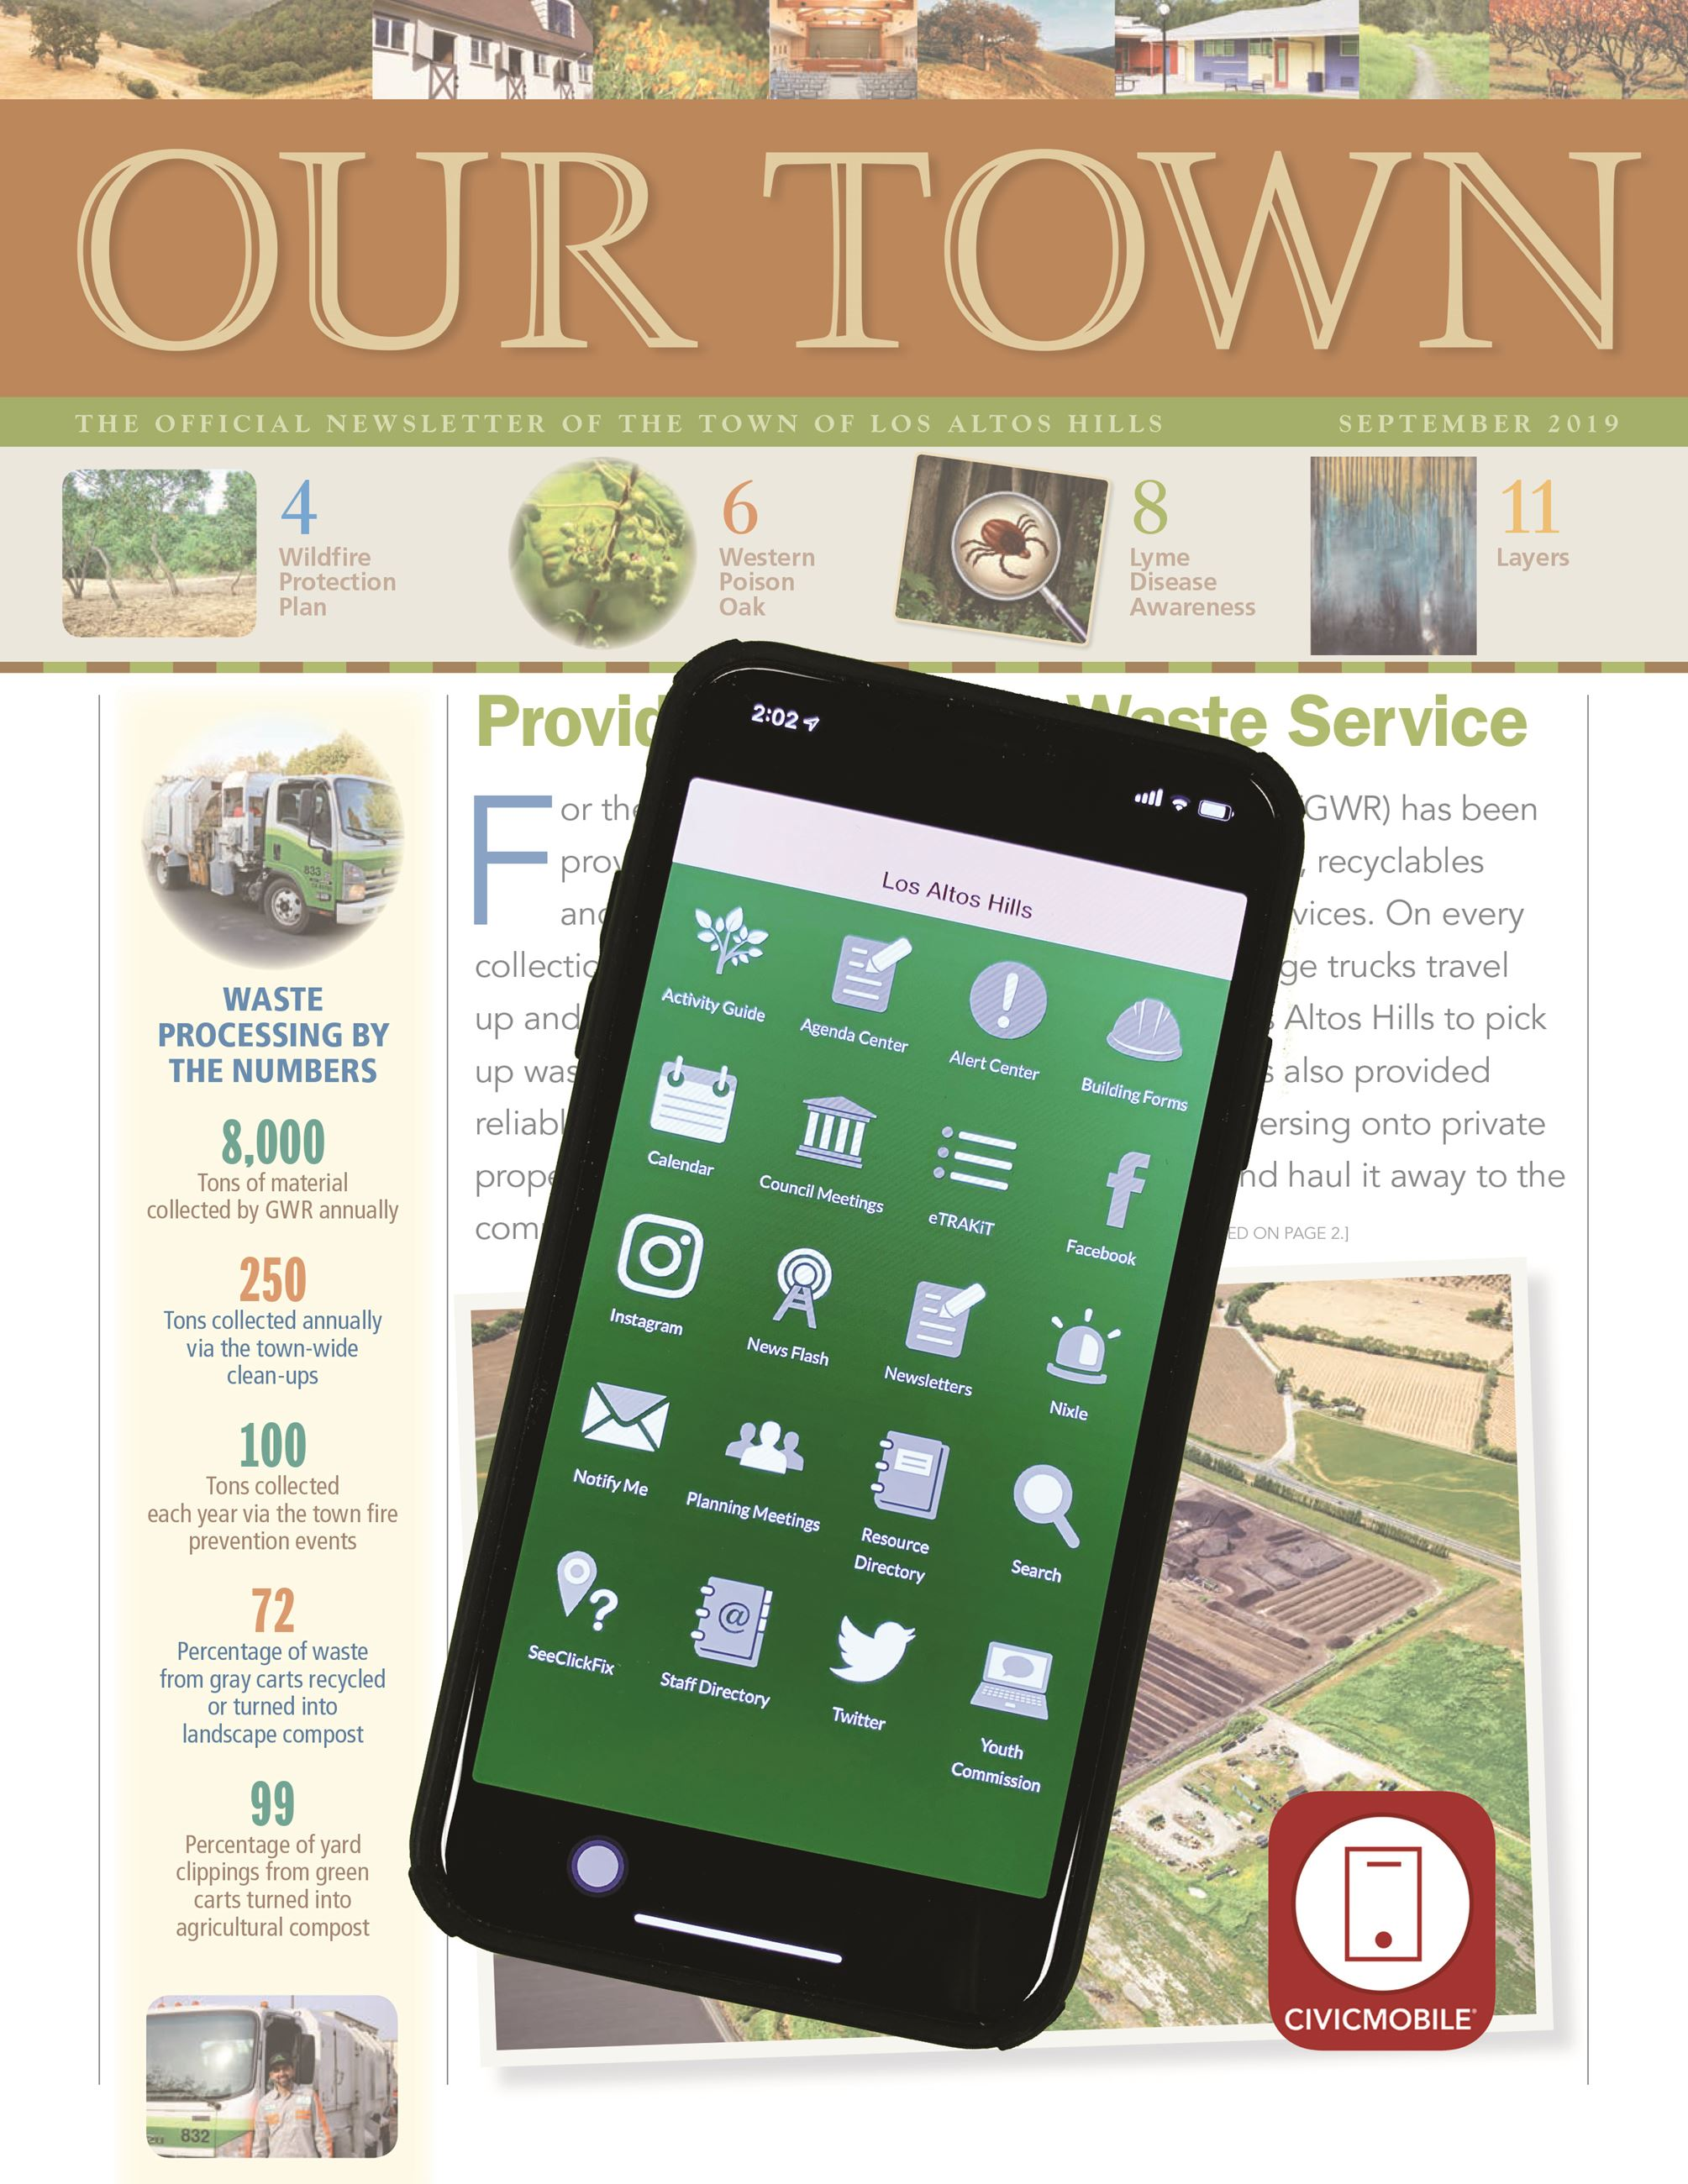 Phone on Our Town image